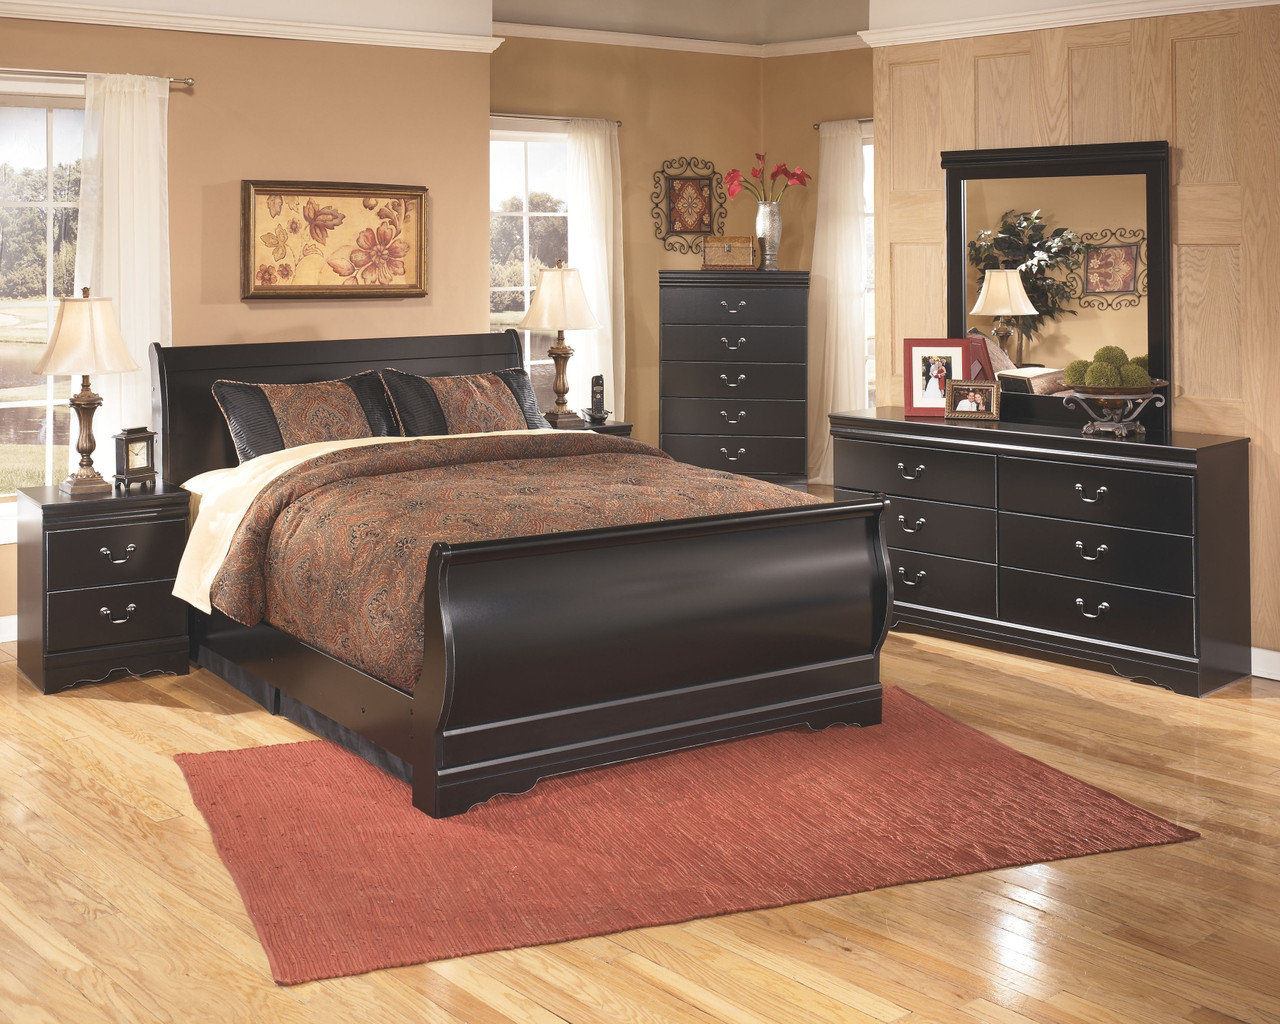 Huey Vineyard Black 4 Pc Dresser Mirror Sleigh Bed Nightstand Sold At Bolin Rental Serving Clarksville Tn And Madisonville And Hopkinsville Ky